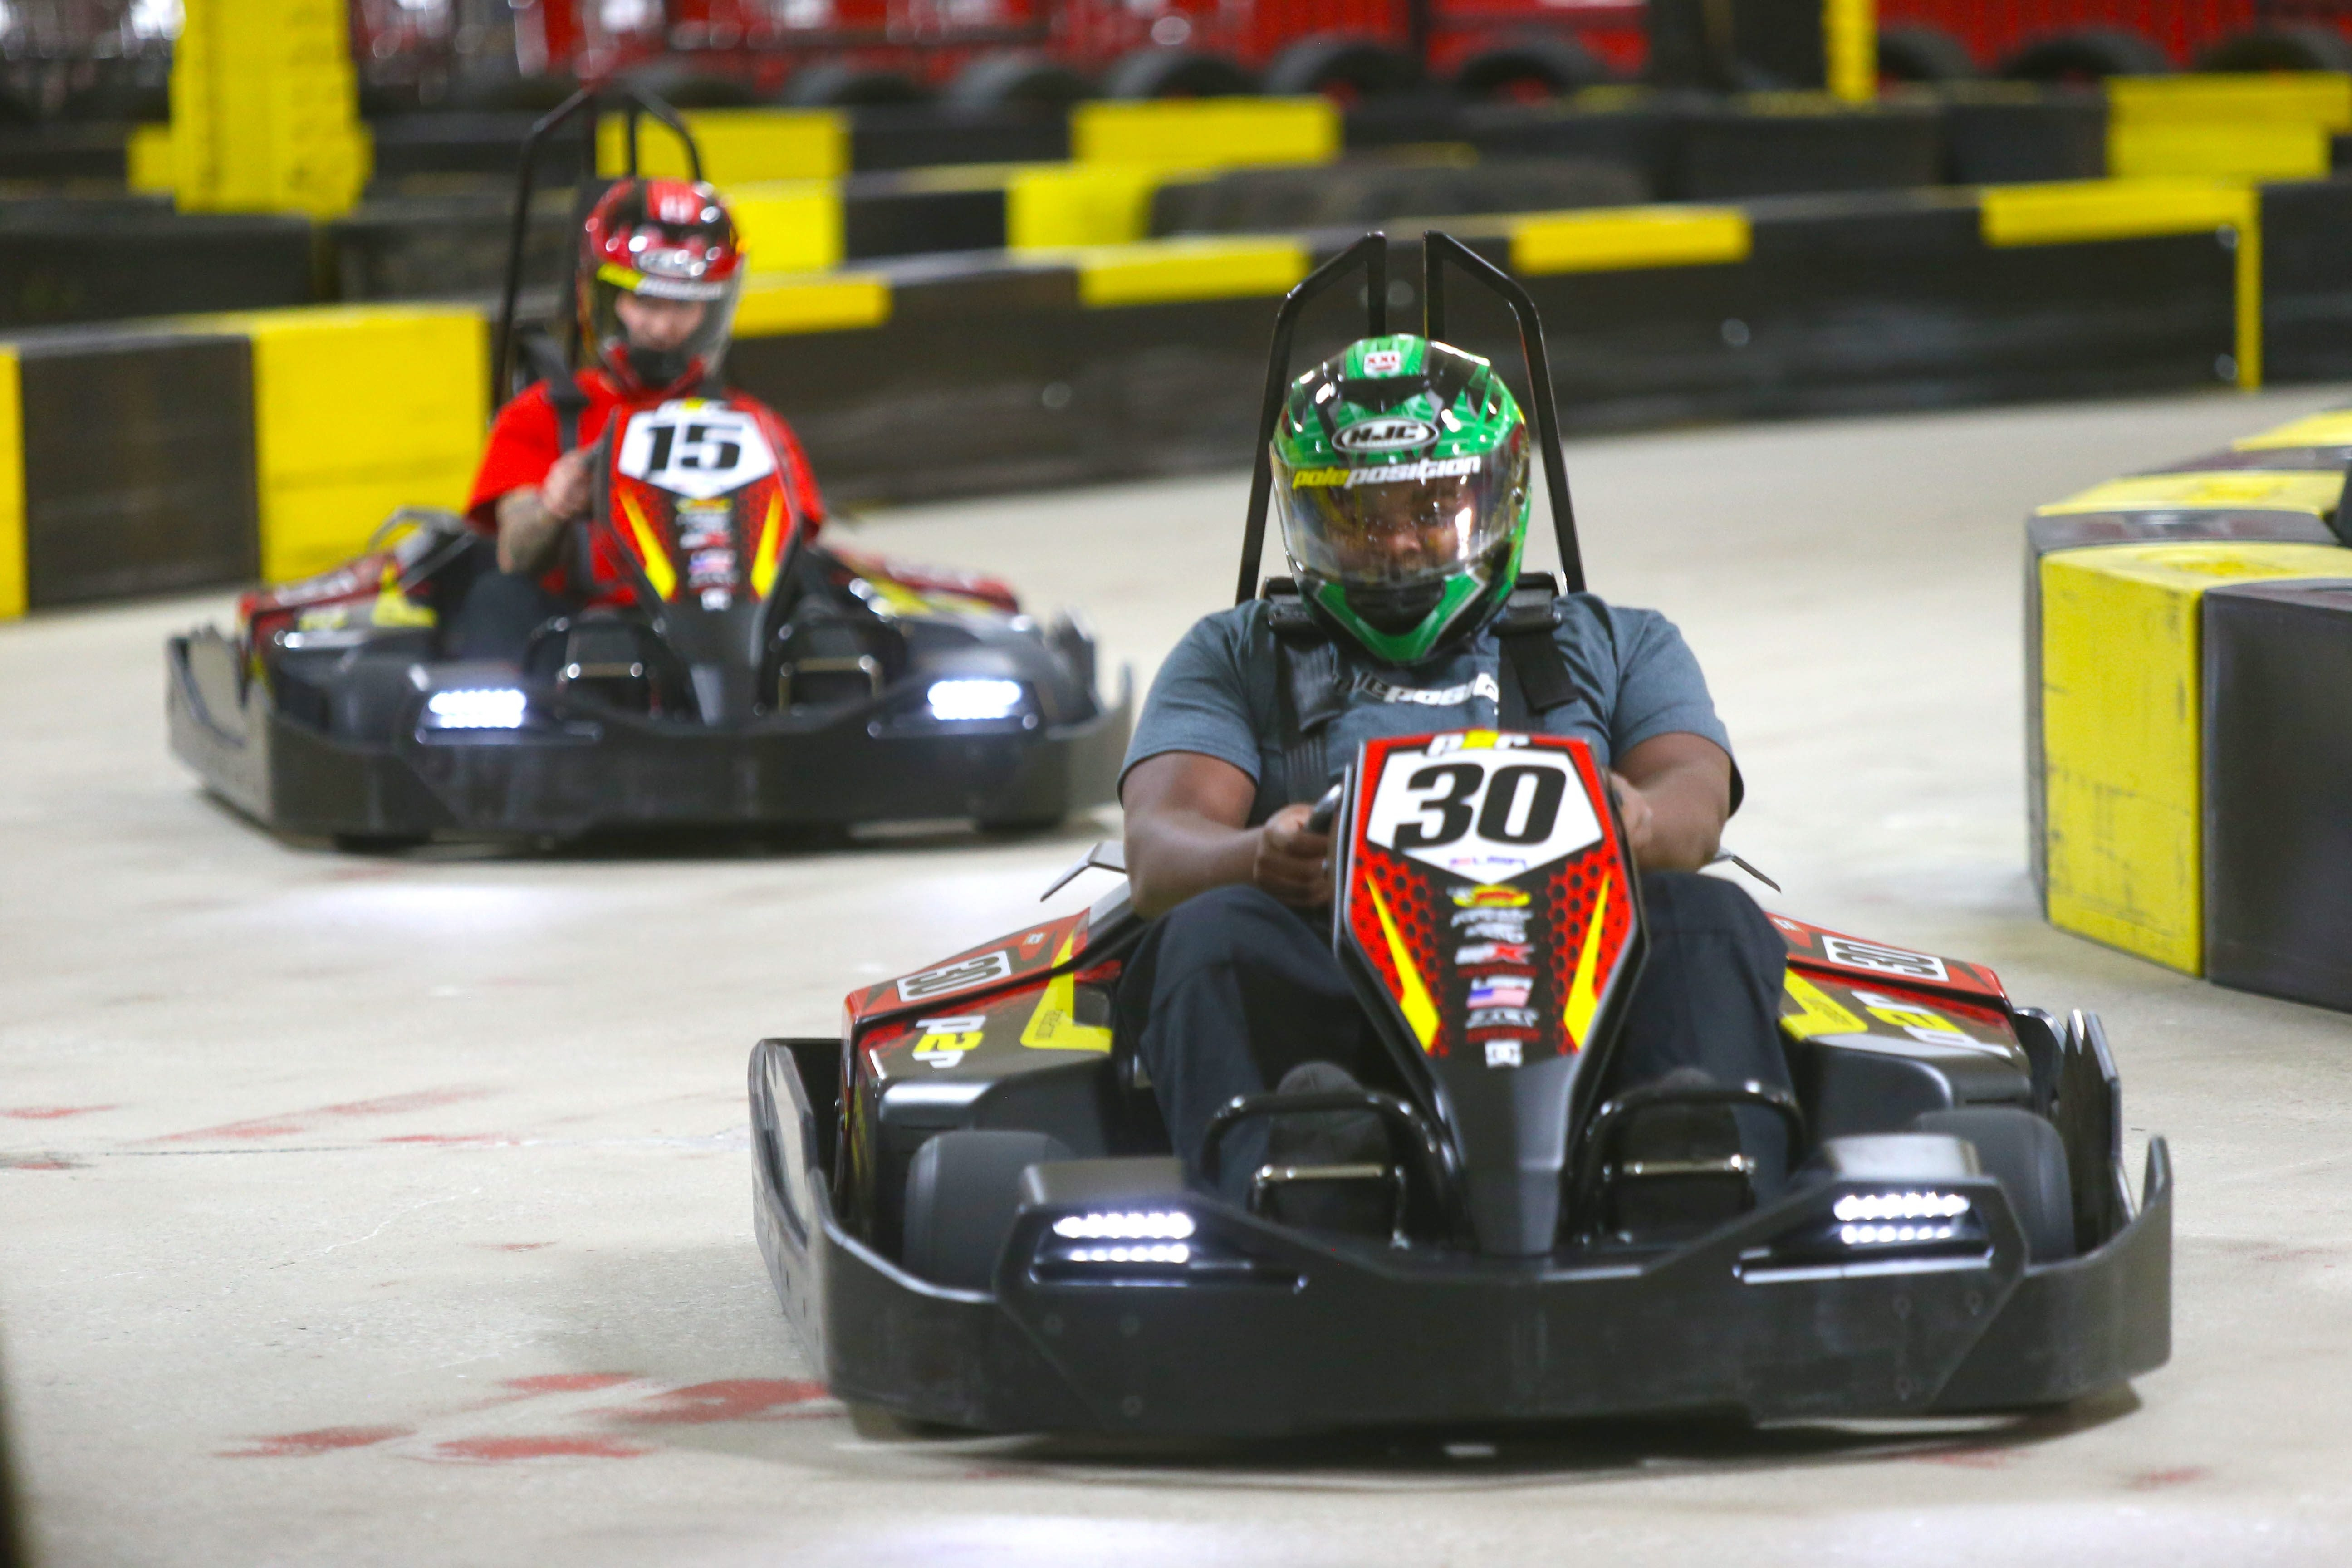 Buffalo News file photo  Attractions at area malls include Pole Position Raceway at Walden Galleria in Cheektowaga. Malls are increasingly offering entertainment venues to draw traffic.